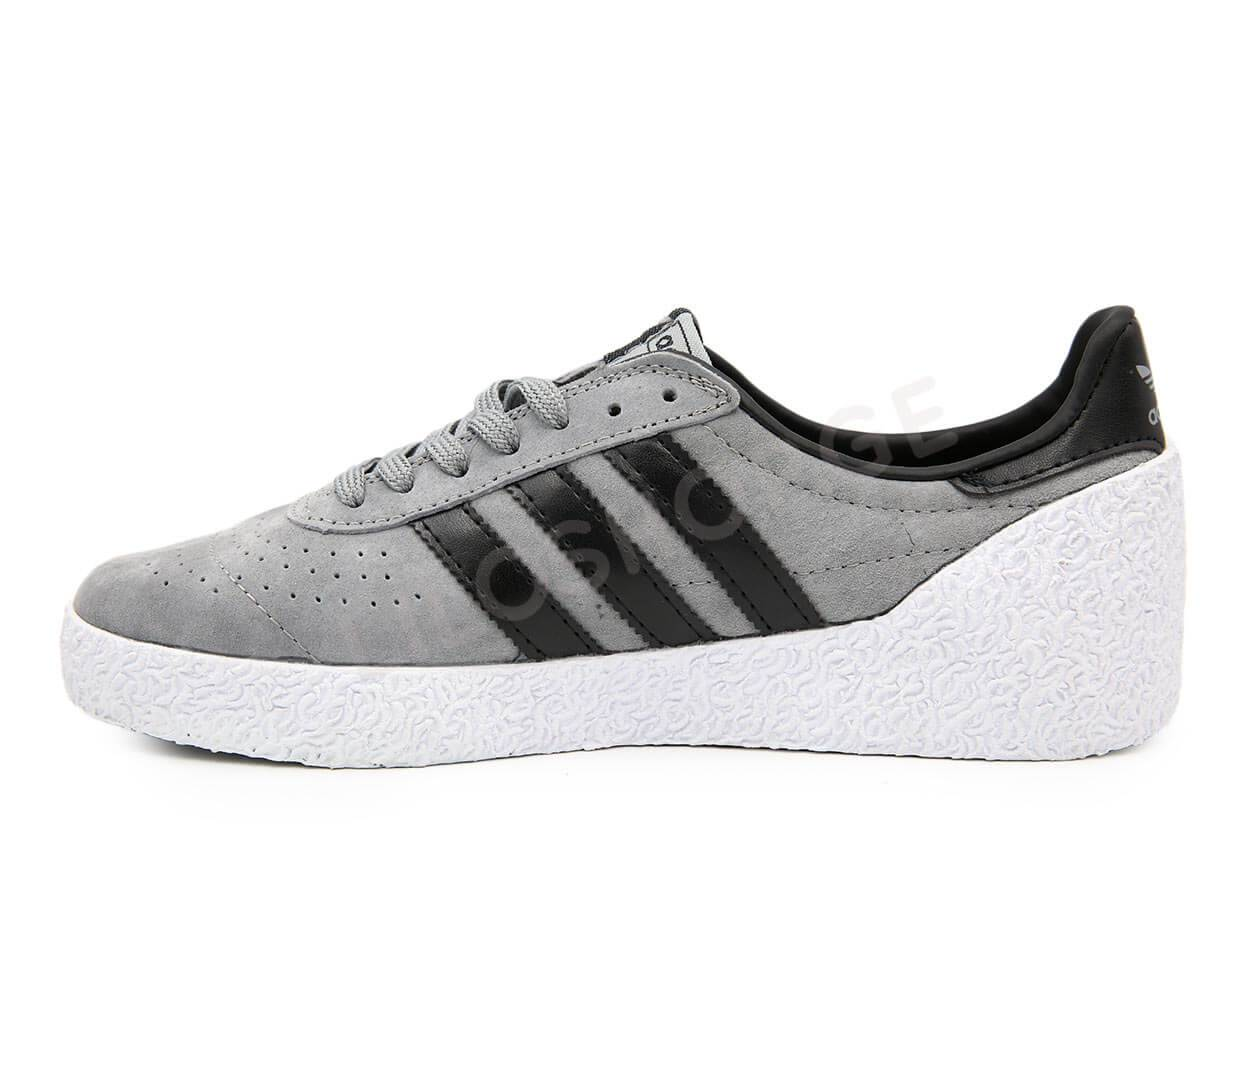 796d12608 new zealand adidas zx 900 weave sort frame 340e7 ad232